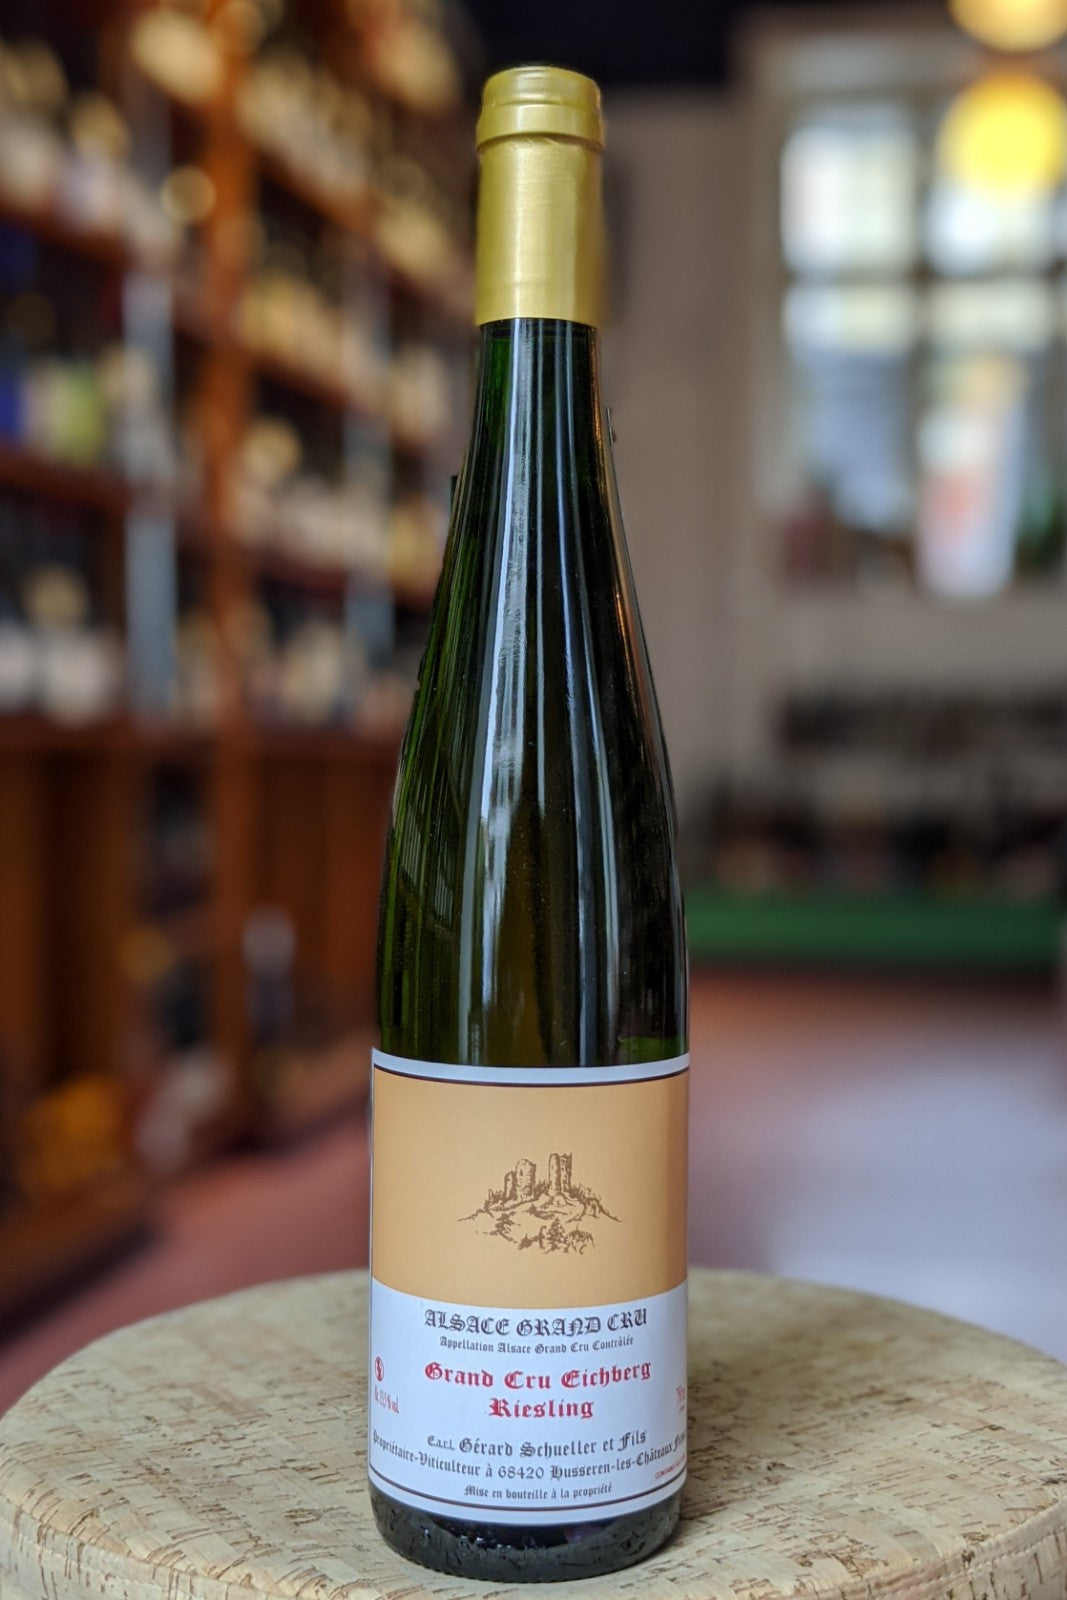 Grand Cru Eichberg